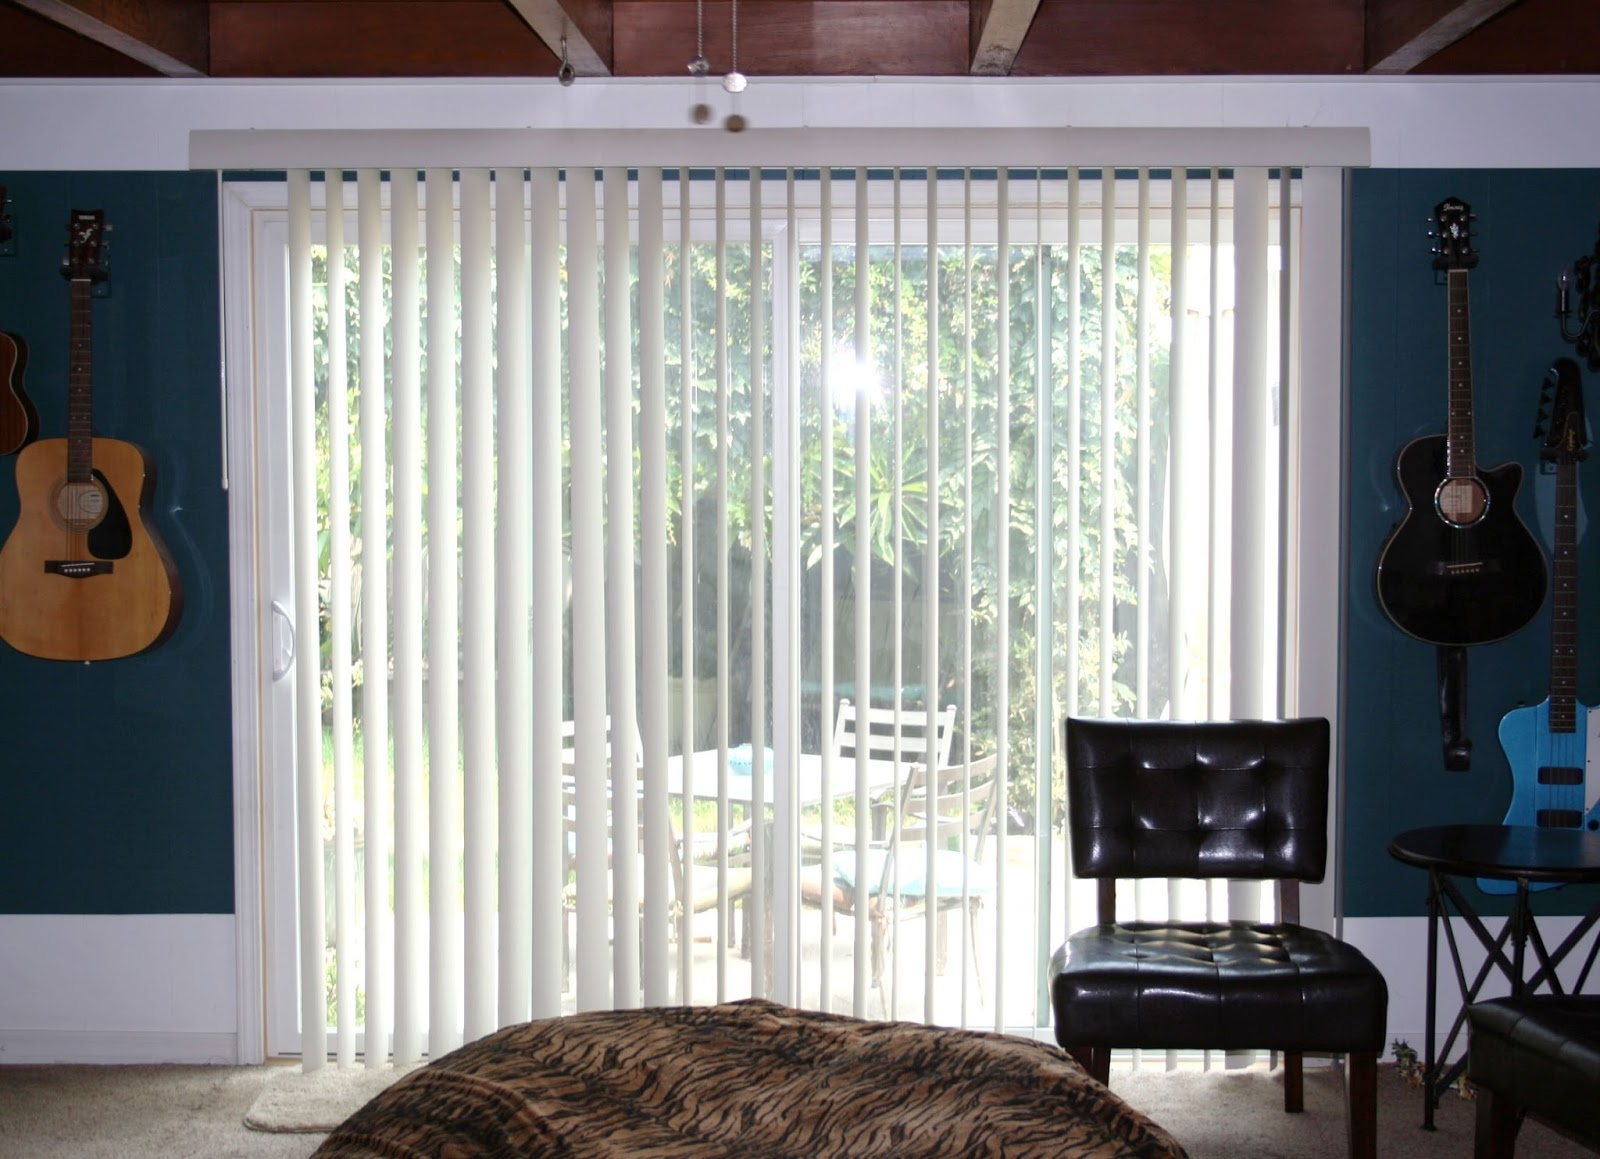 Stunning Vertical Blinds With Curtains Neat Design Vertical Blinds Regarding Luxury Blinds And Curtains (Image 15 of 15)